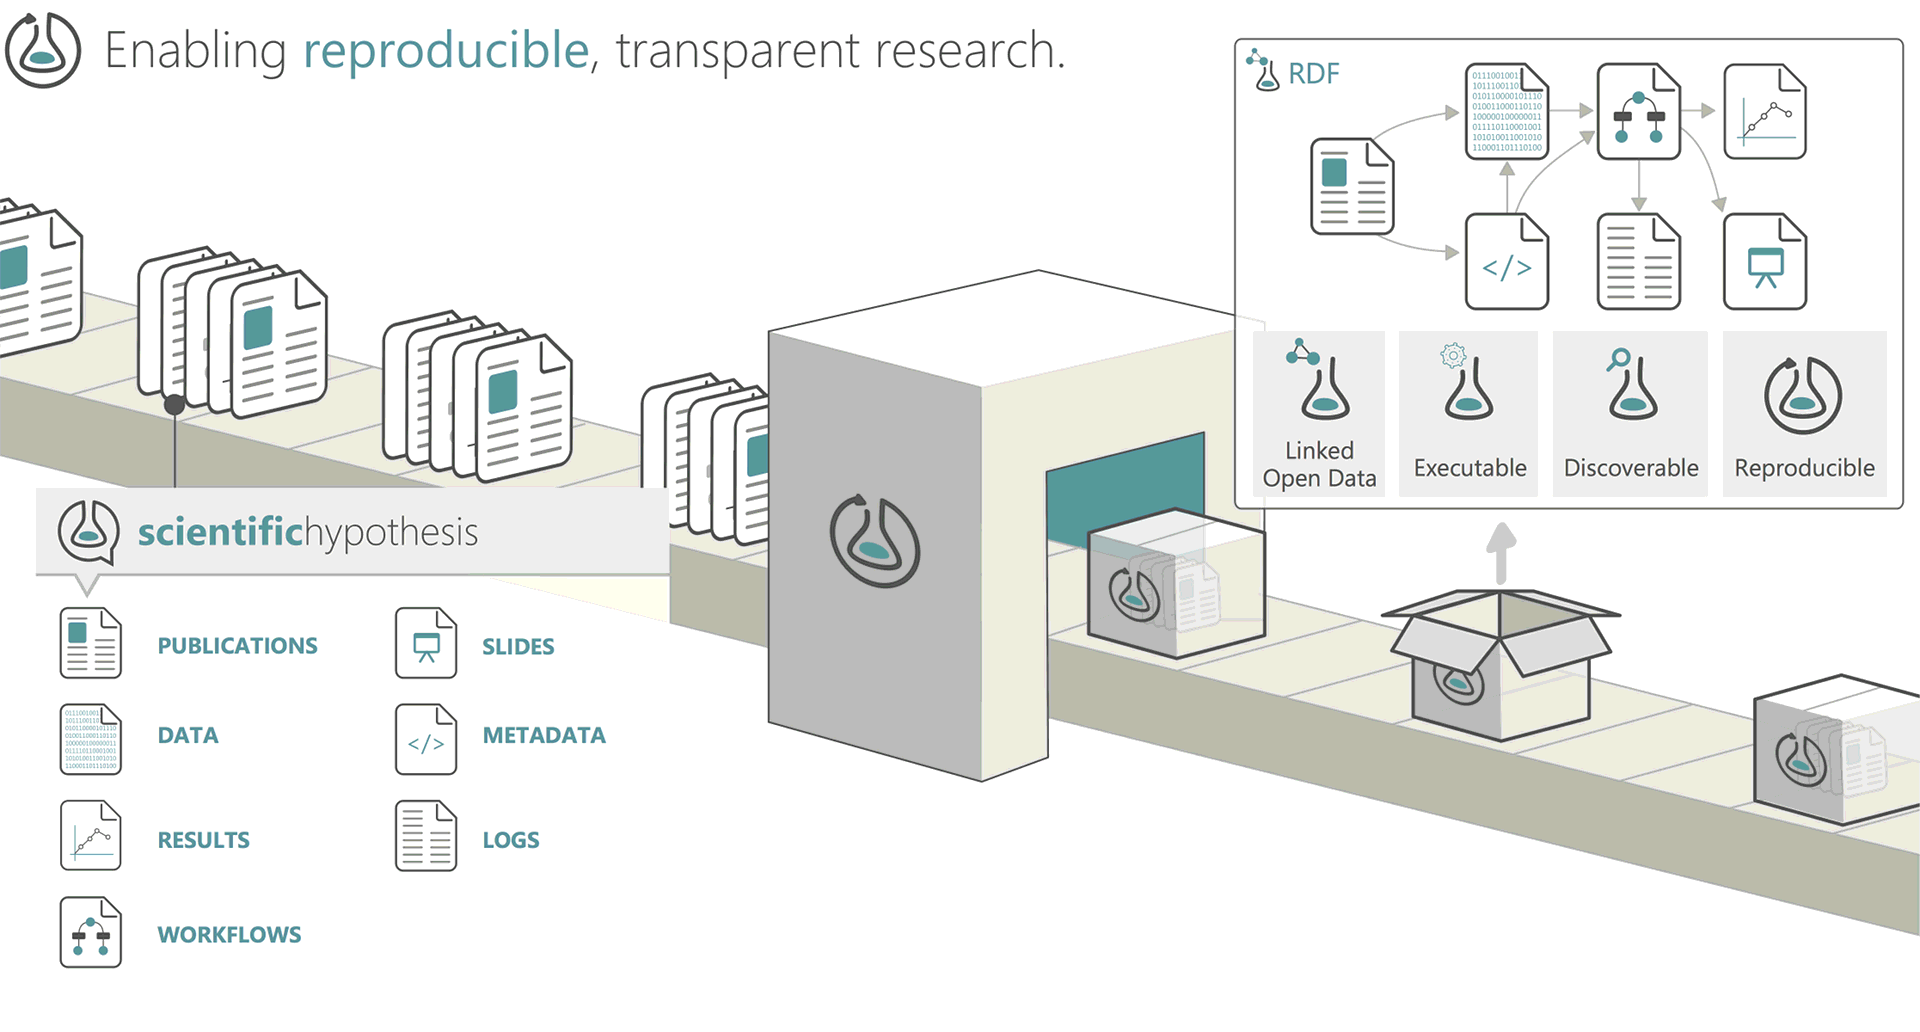 Research Object. Enabling reproducible, transparent research